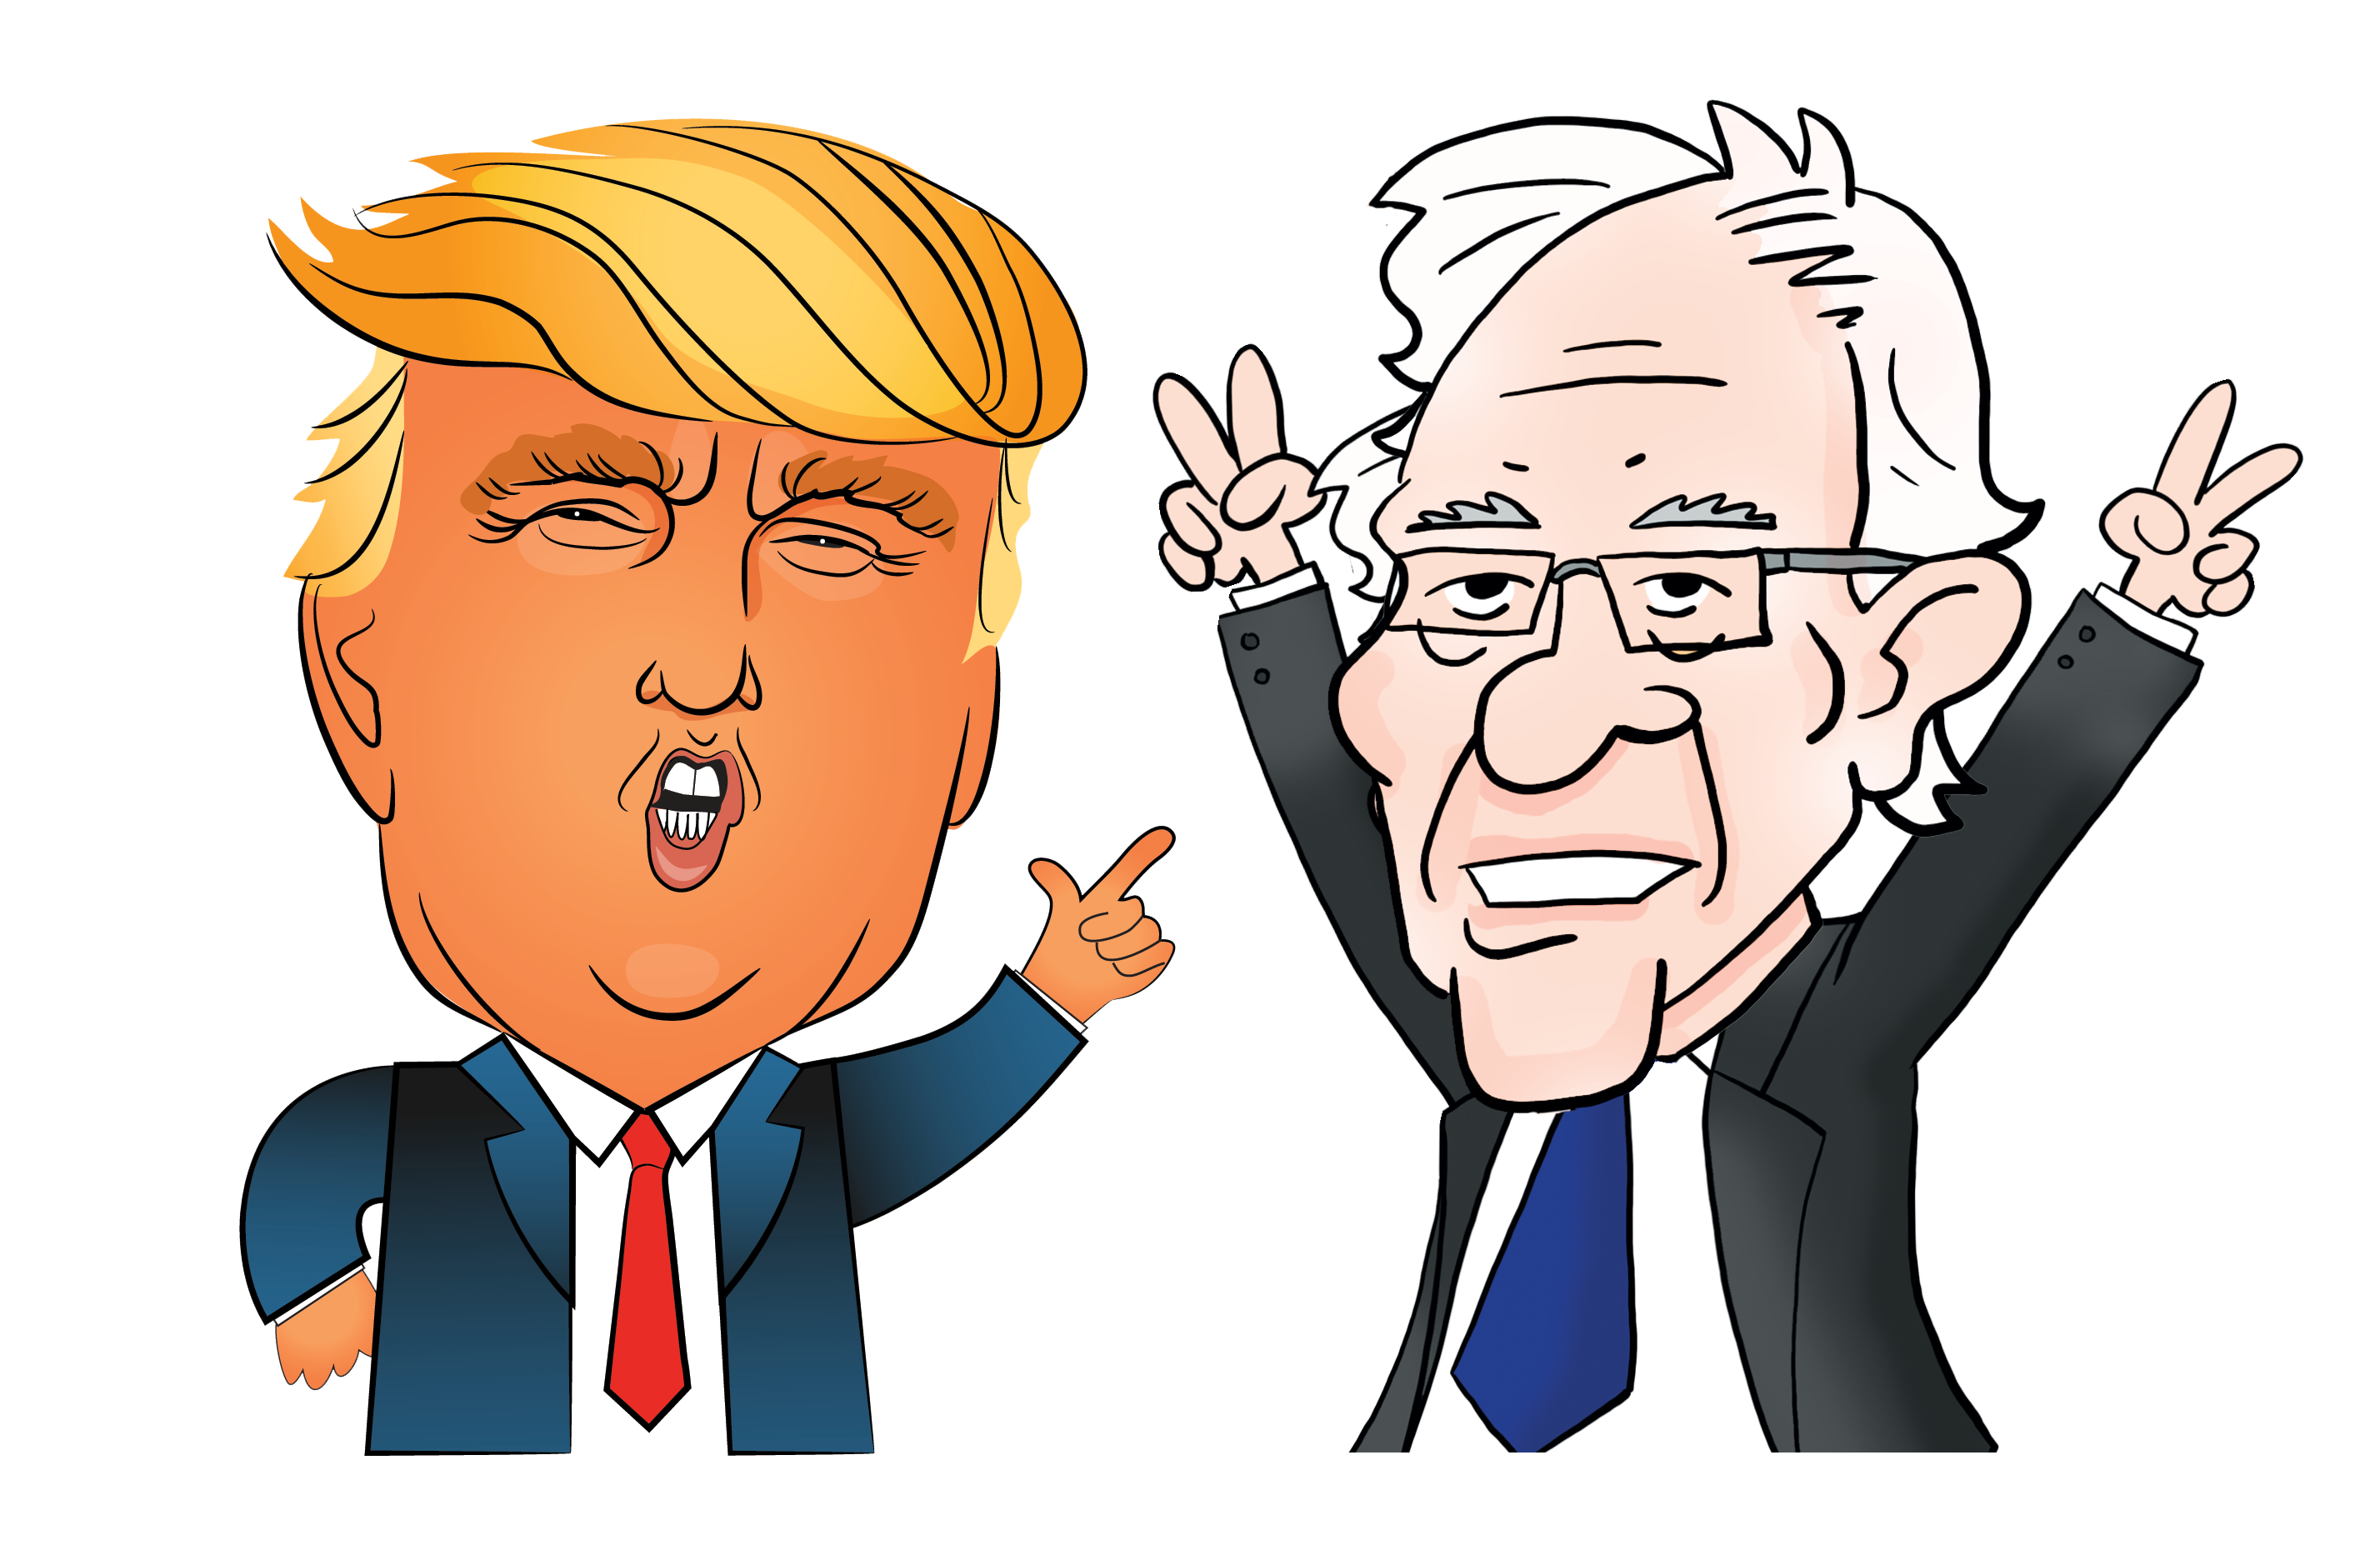 14 cliparts for free. Download Trump clipart and use in.